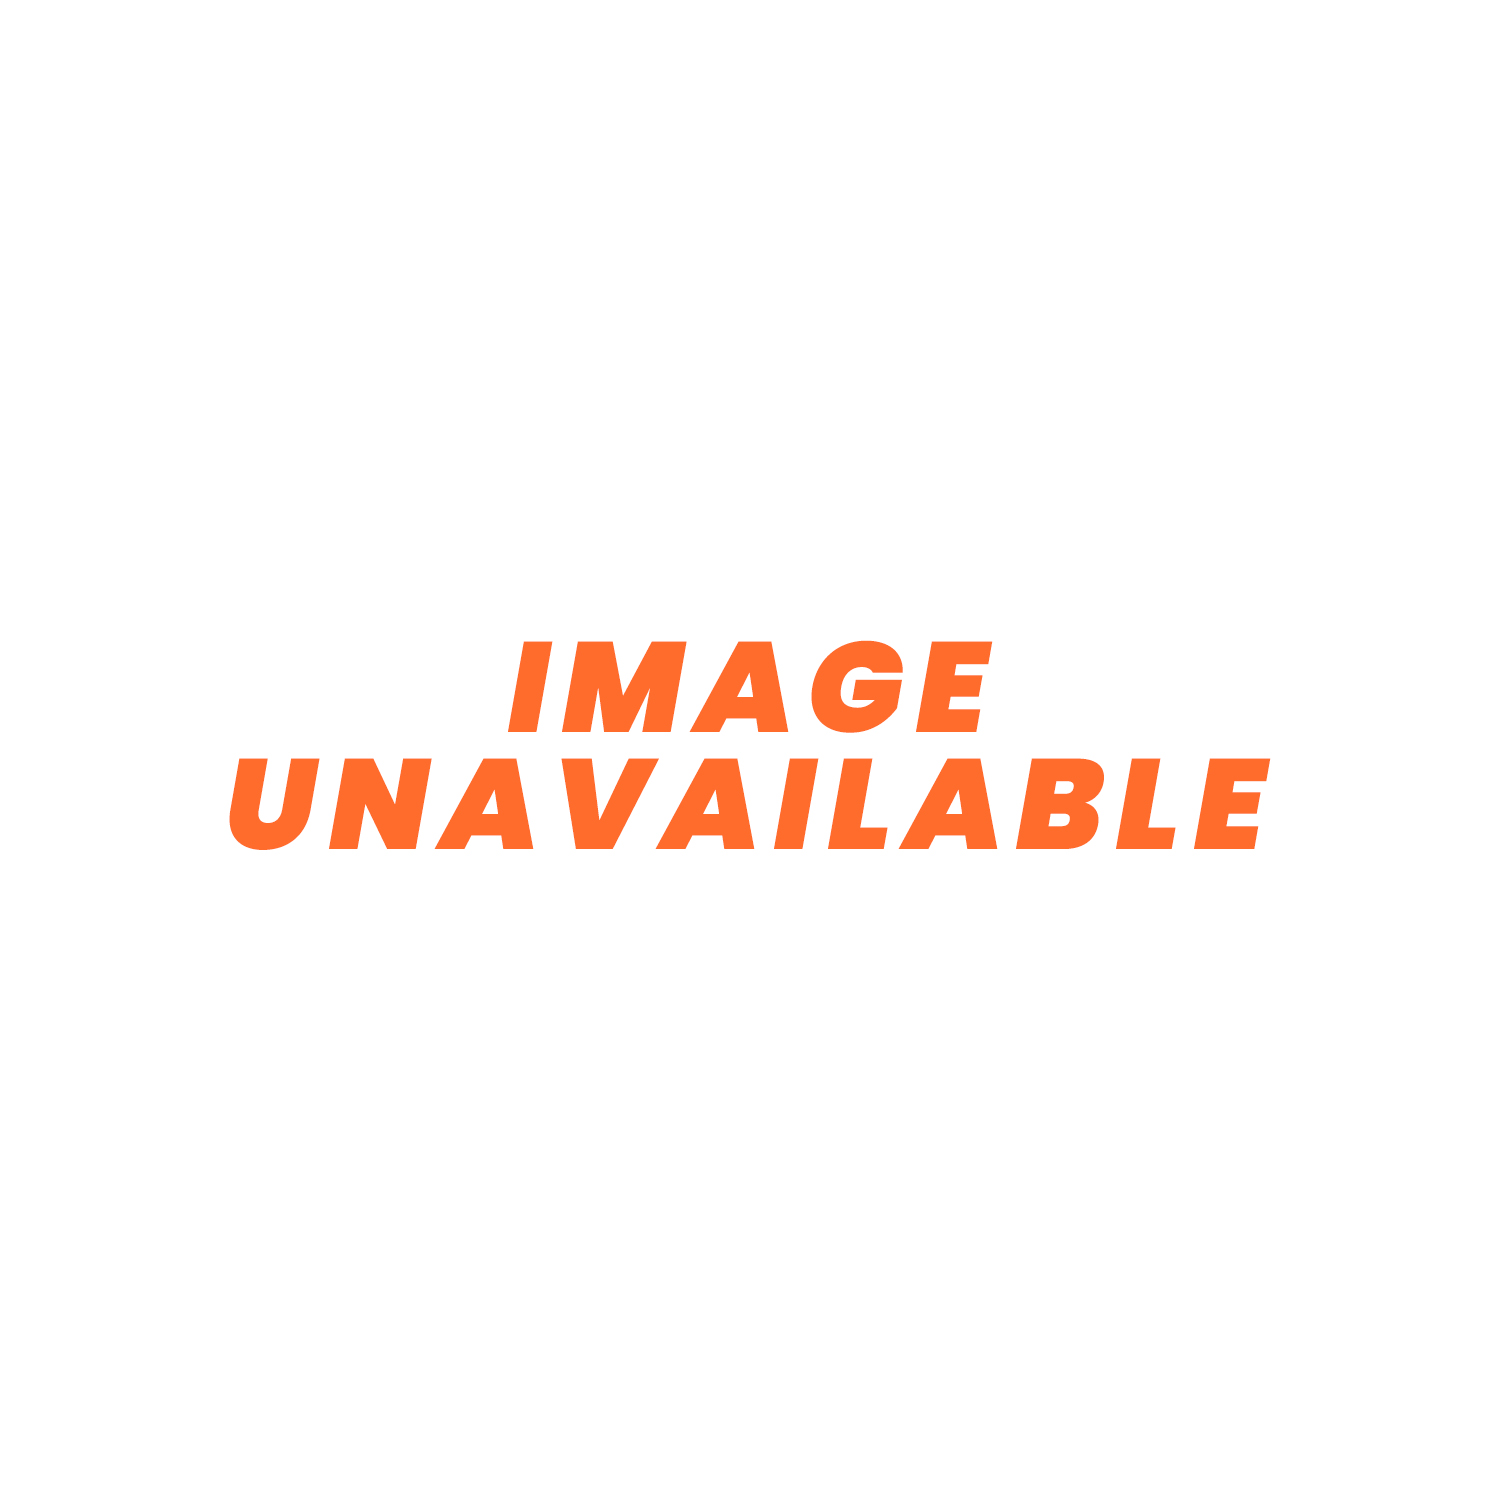 "SPAL Radiator Fan - 5.5"" (140mm) Pull VA39-A101-45A 289cfm Front"